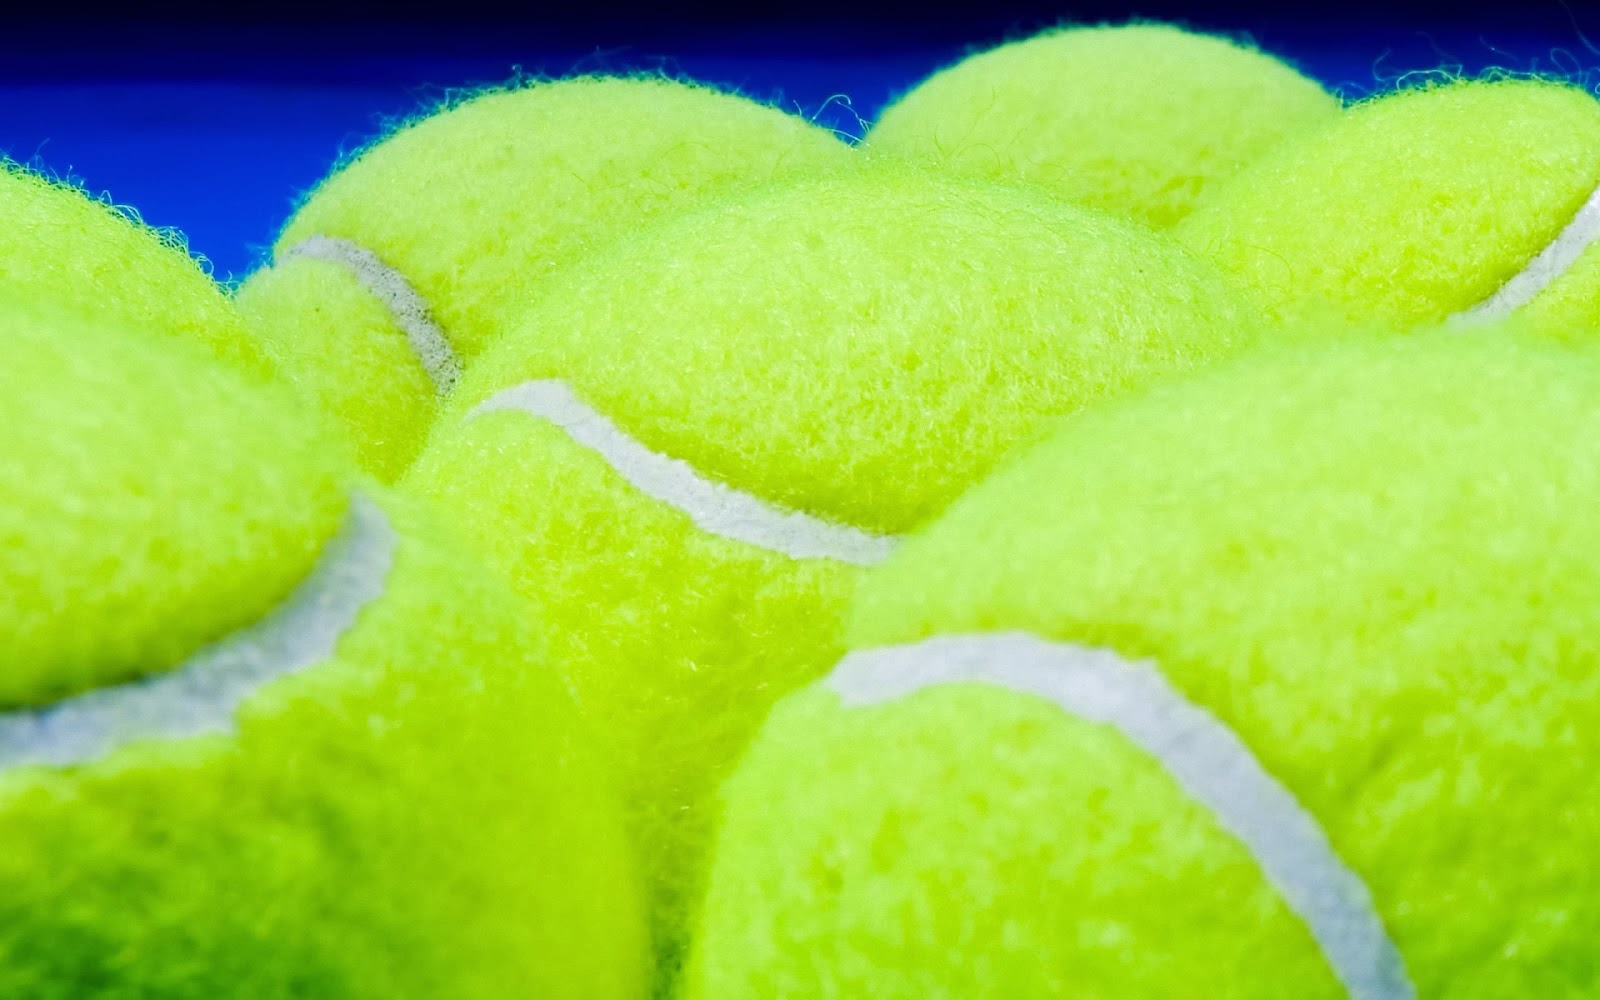 tennis balls up close photos wallpaper 65178